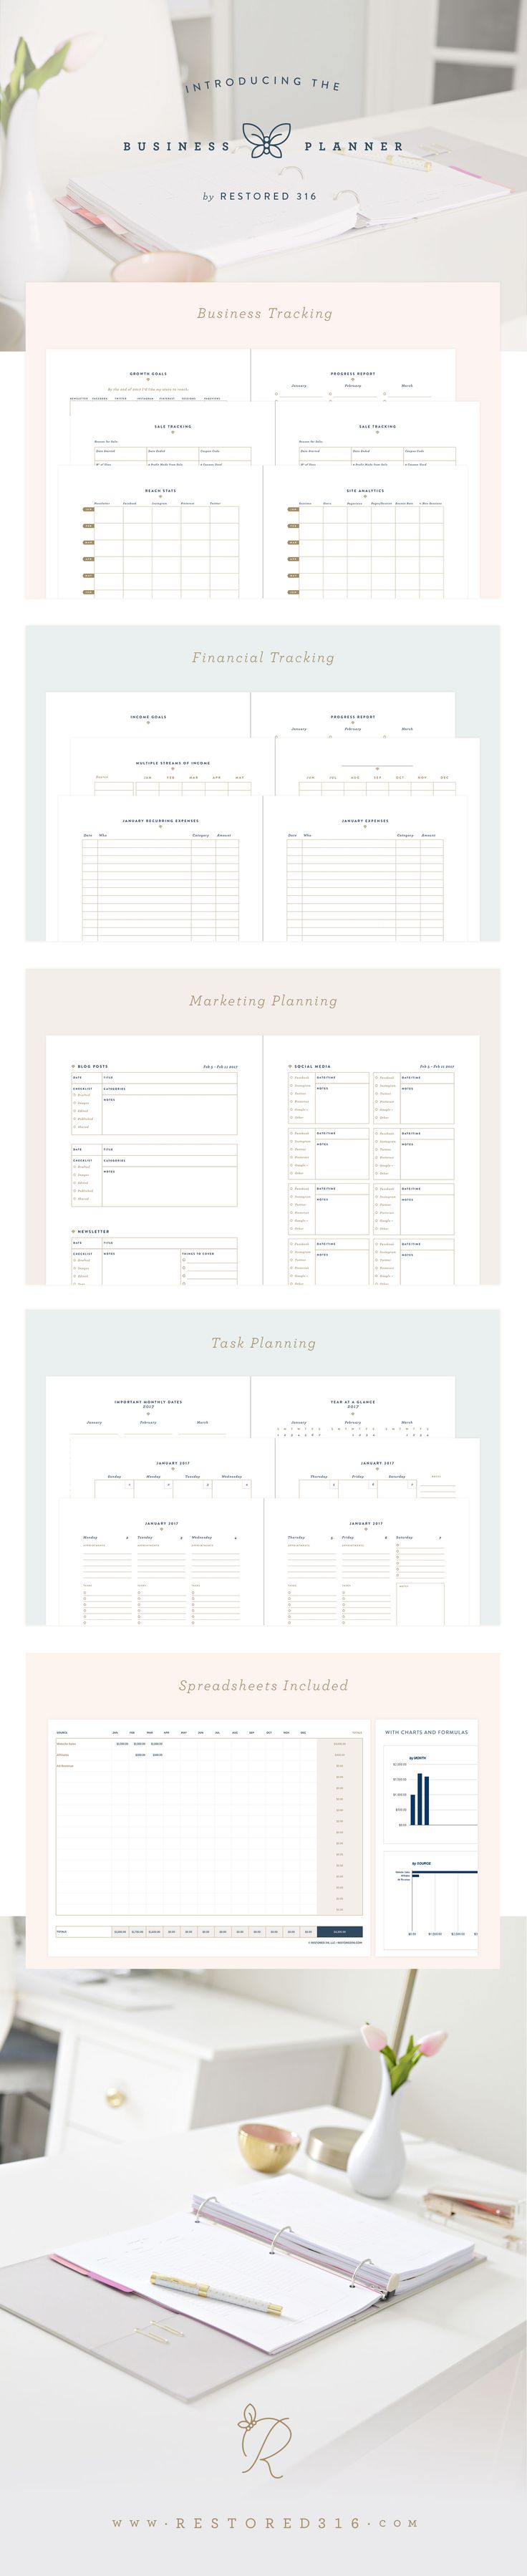 This amazing Business Planner is unique! It includes the planner, videos and spreadsheets to help you grow, track, organize and scale your business.